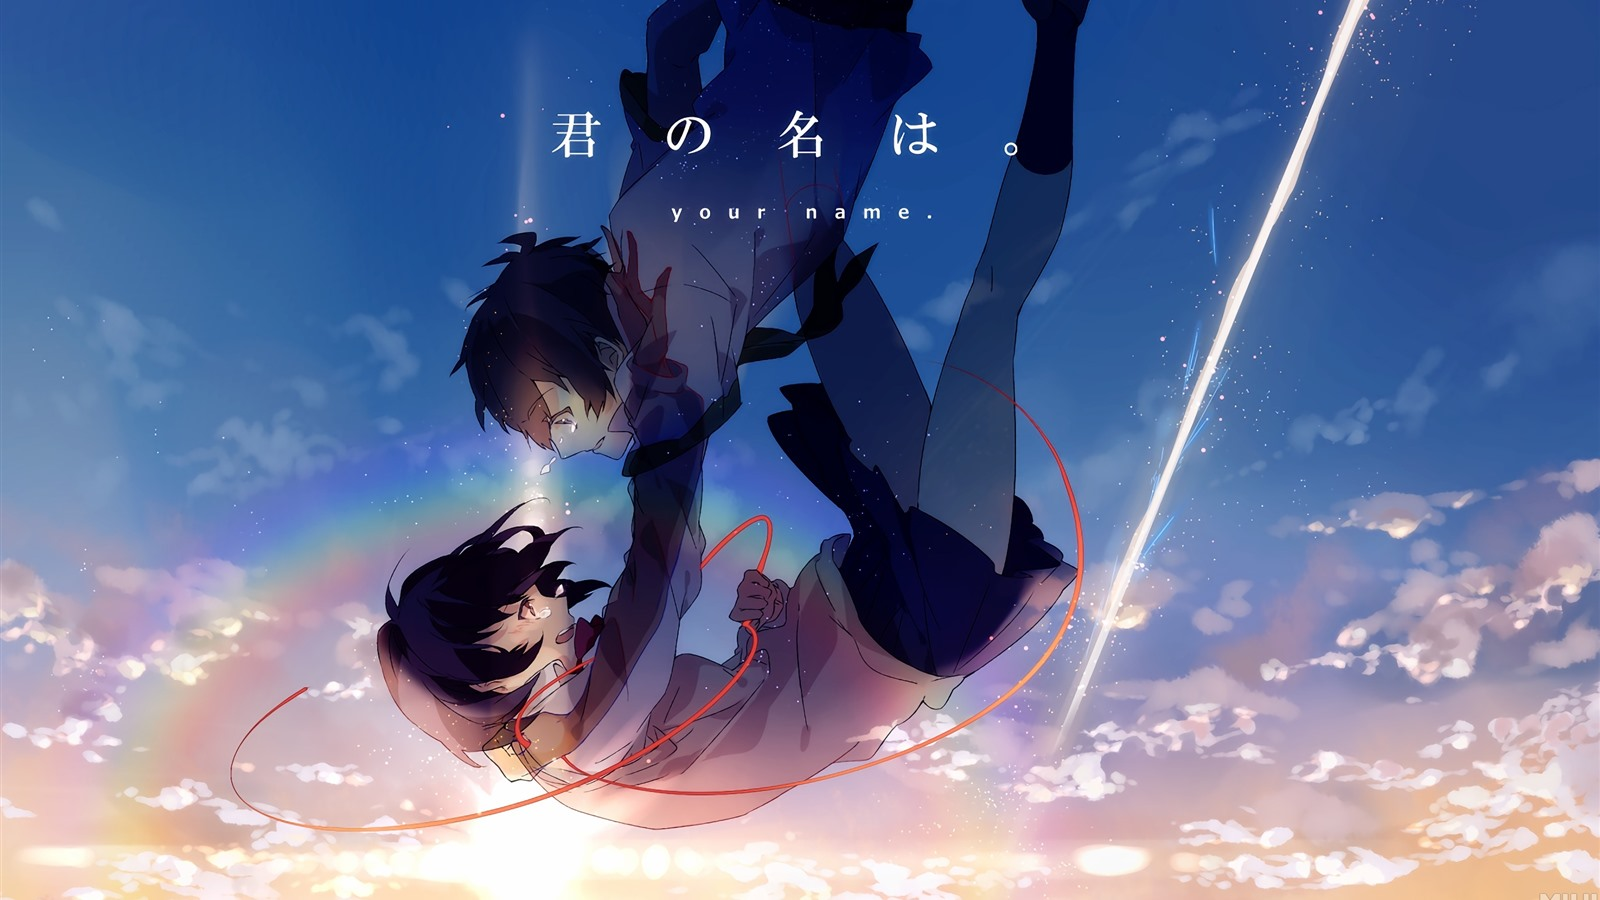 Wallpaper Your Name Japanese Anime 2560x1600 Hd Picture Image